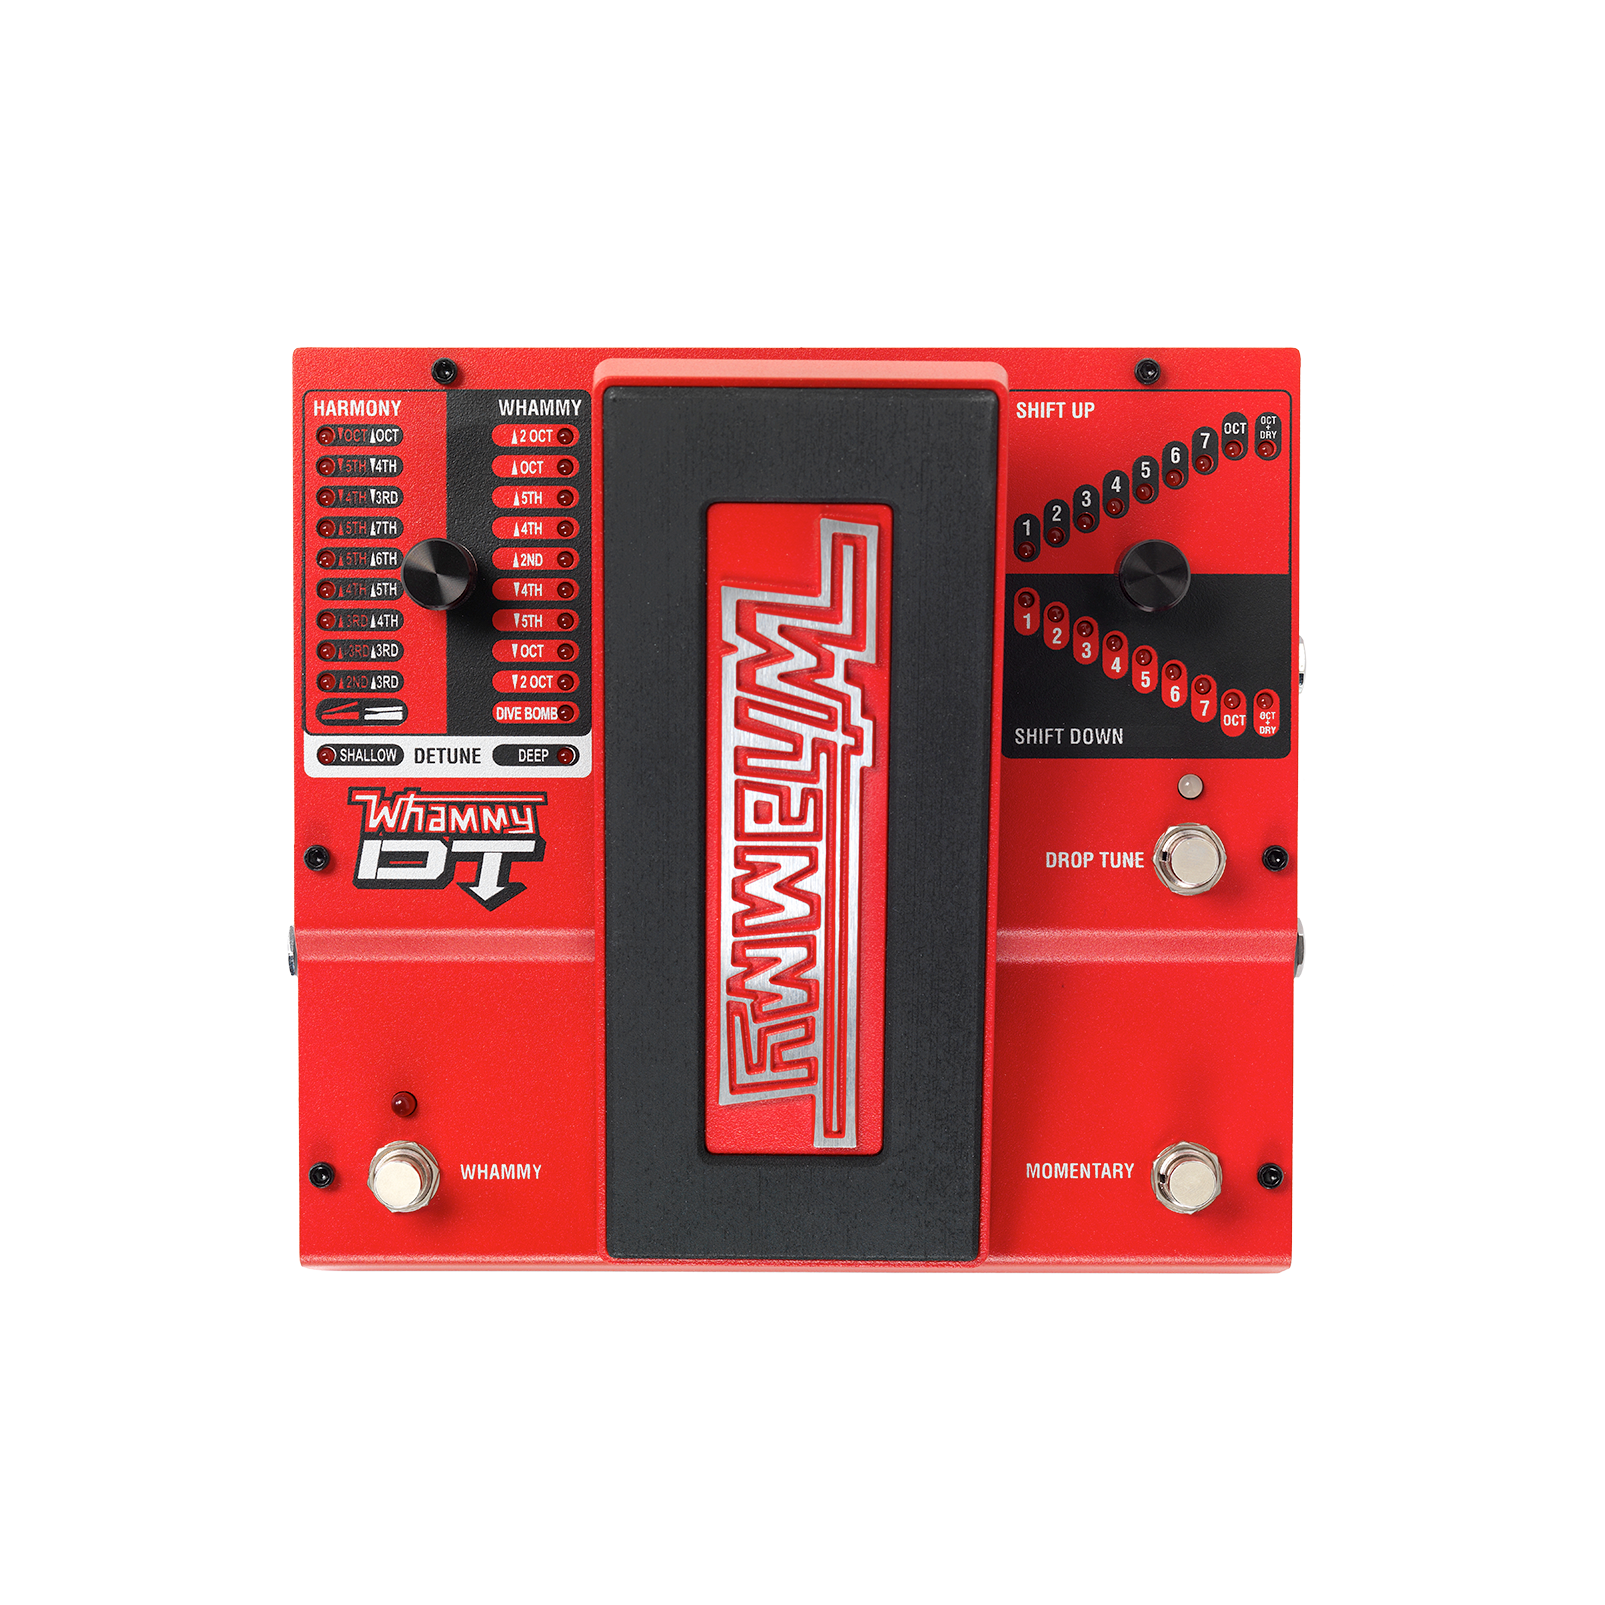 Whammy DT - Red - Classic pitch shifting with drop and raised tuning - Hero